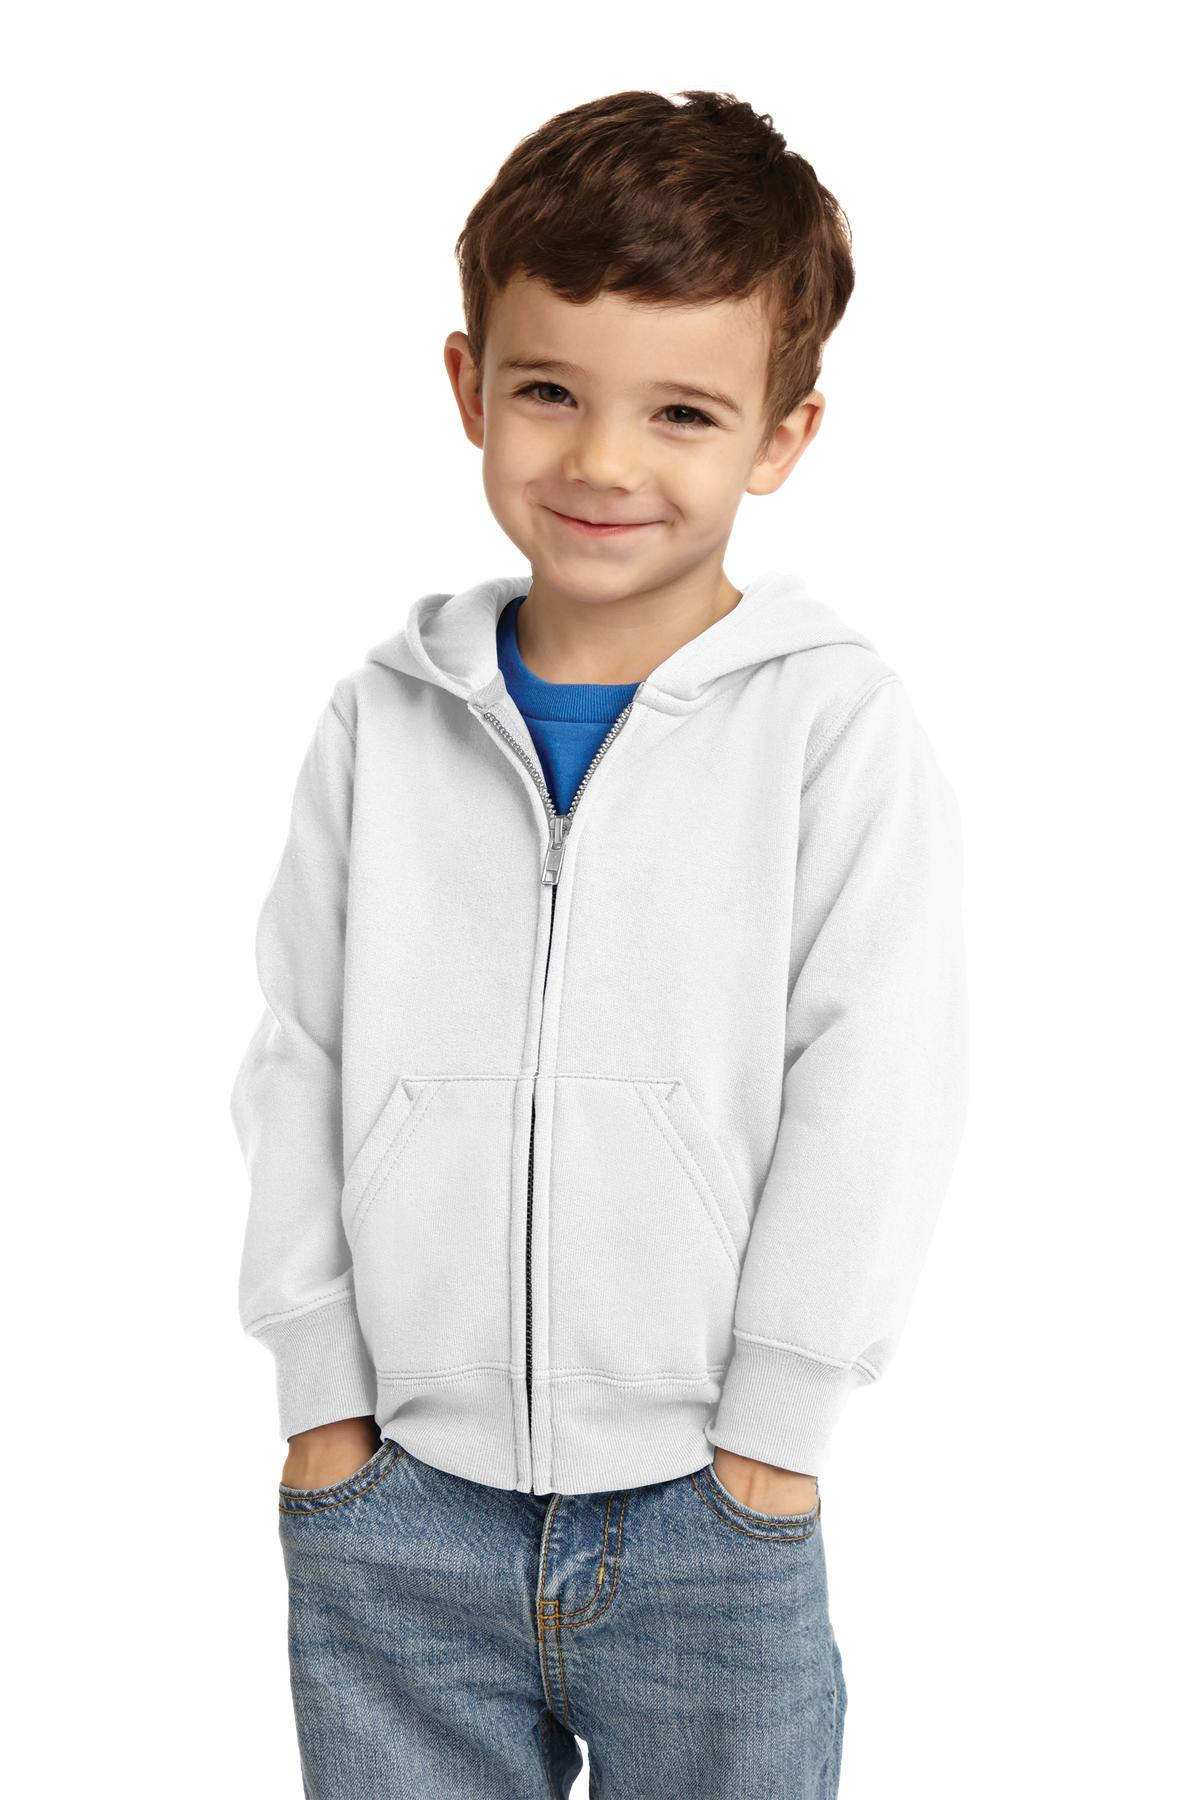 Port & Company ®  Toddler Core Fleece Full-Zip Hooded Sweatshirt. CAR78TZH - White